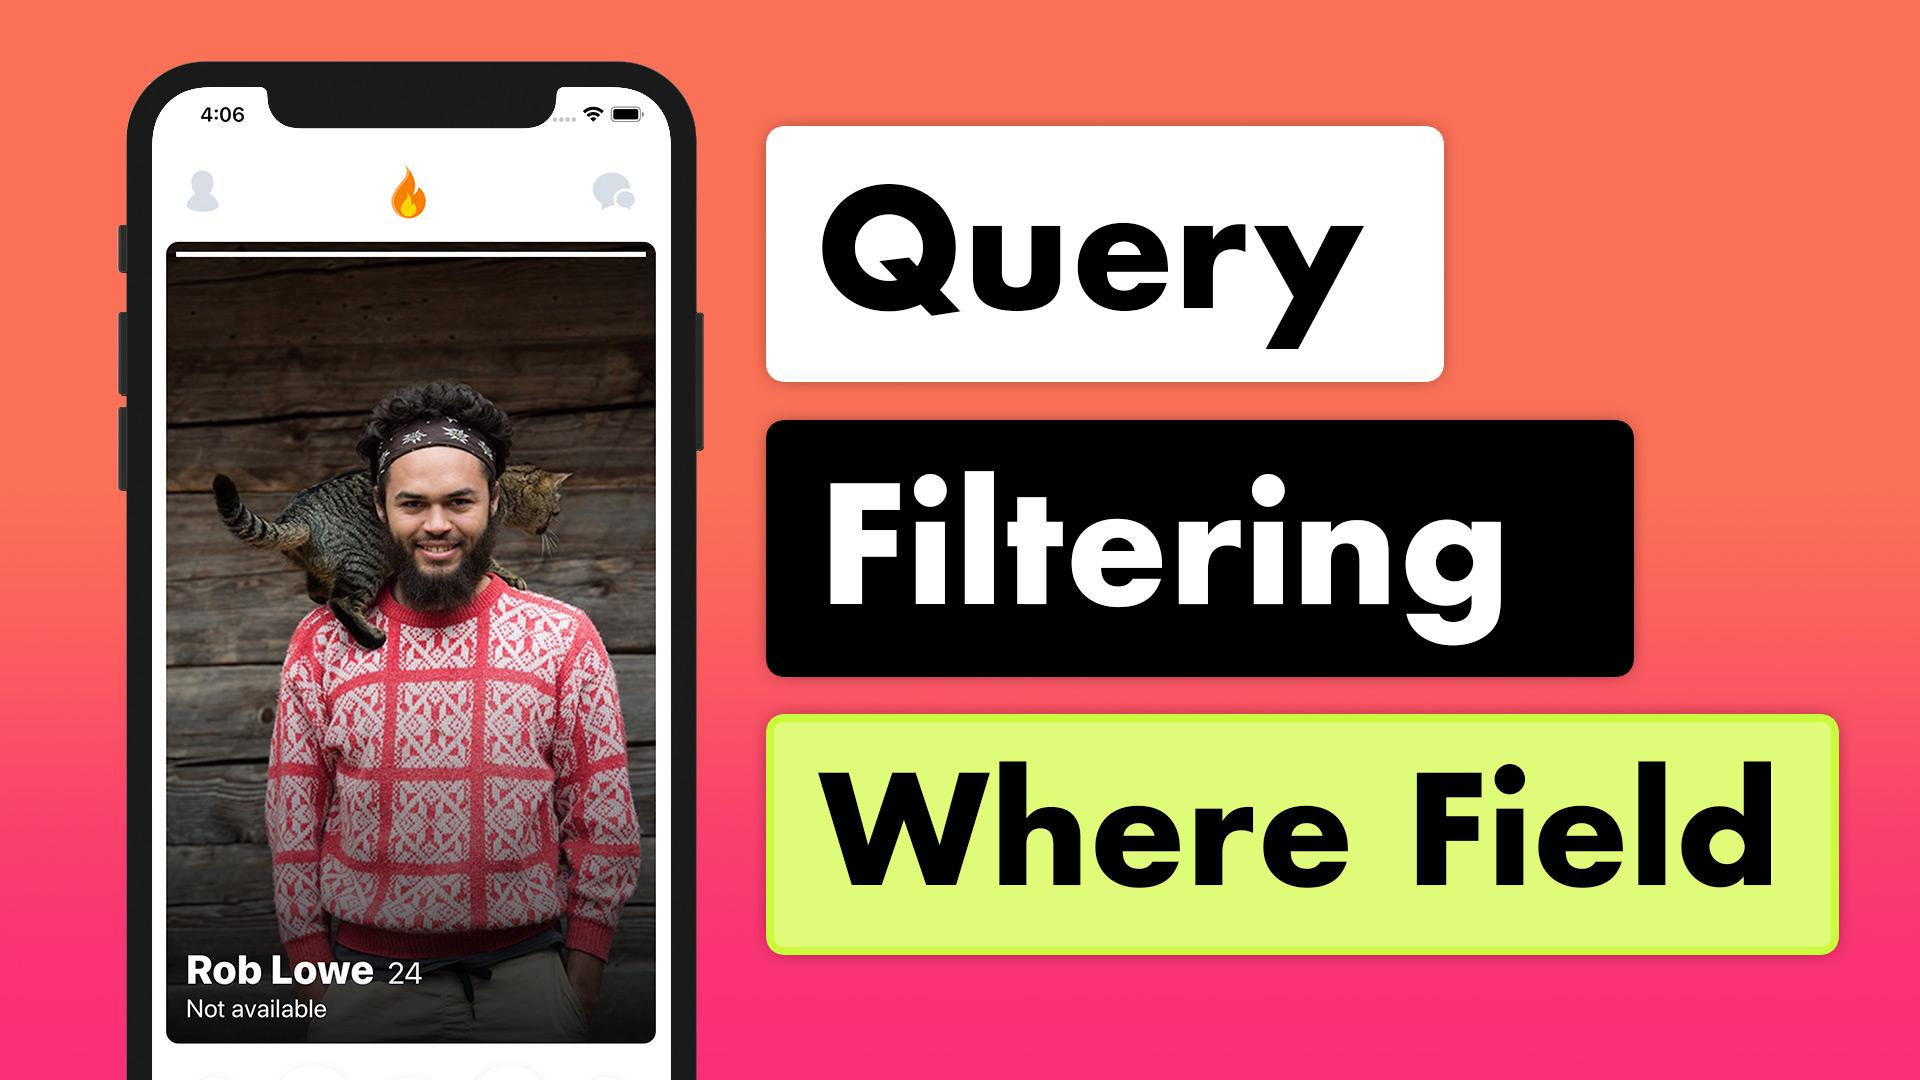 Tinder Firestore MVVM 22 - Query Filtering | Lets Build That App